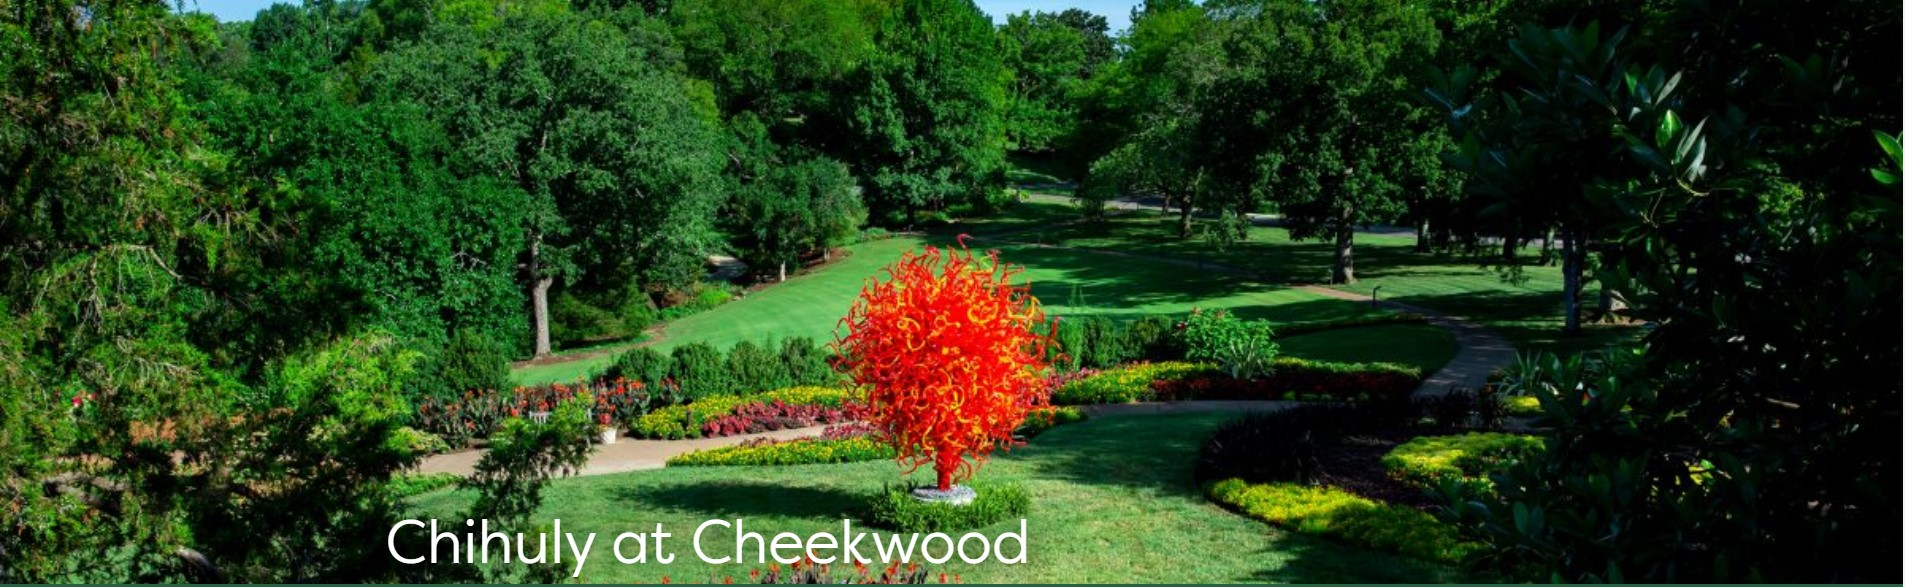 NAM visits Chihuly at Cheekwood @ Cheekwood